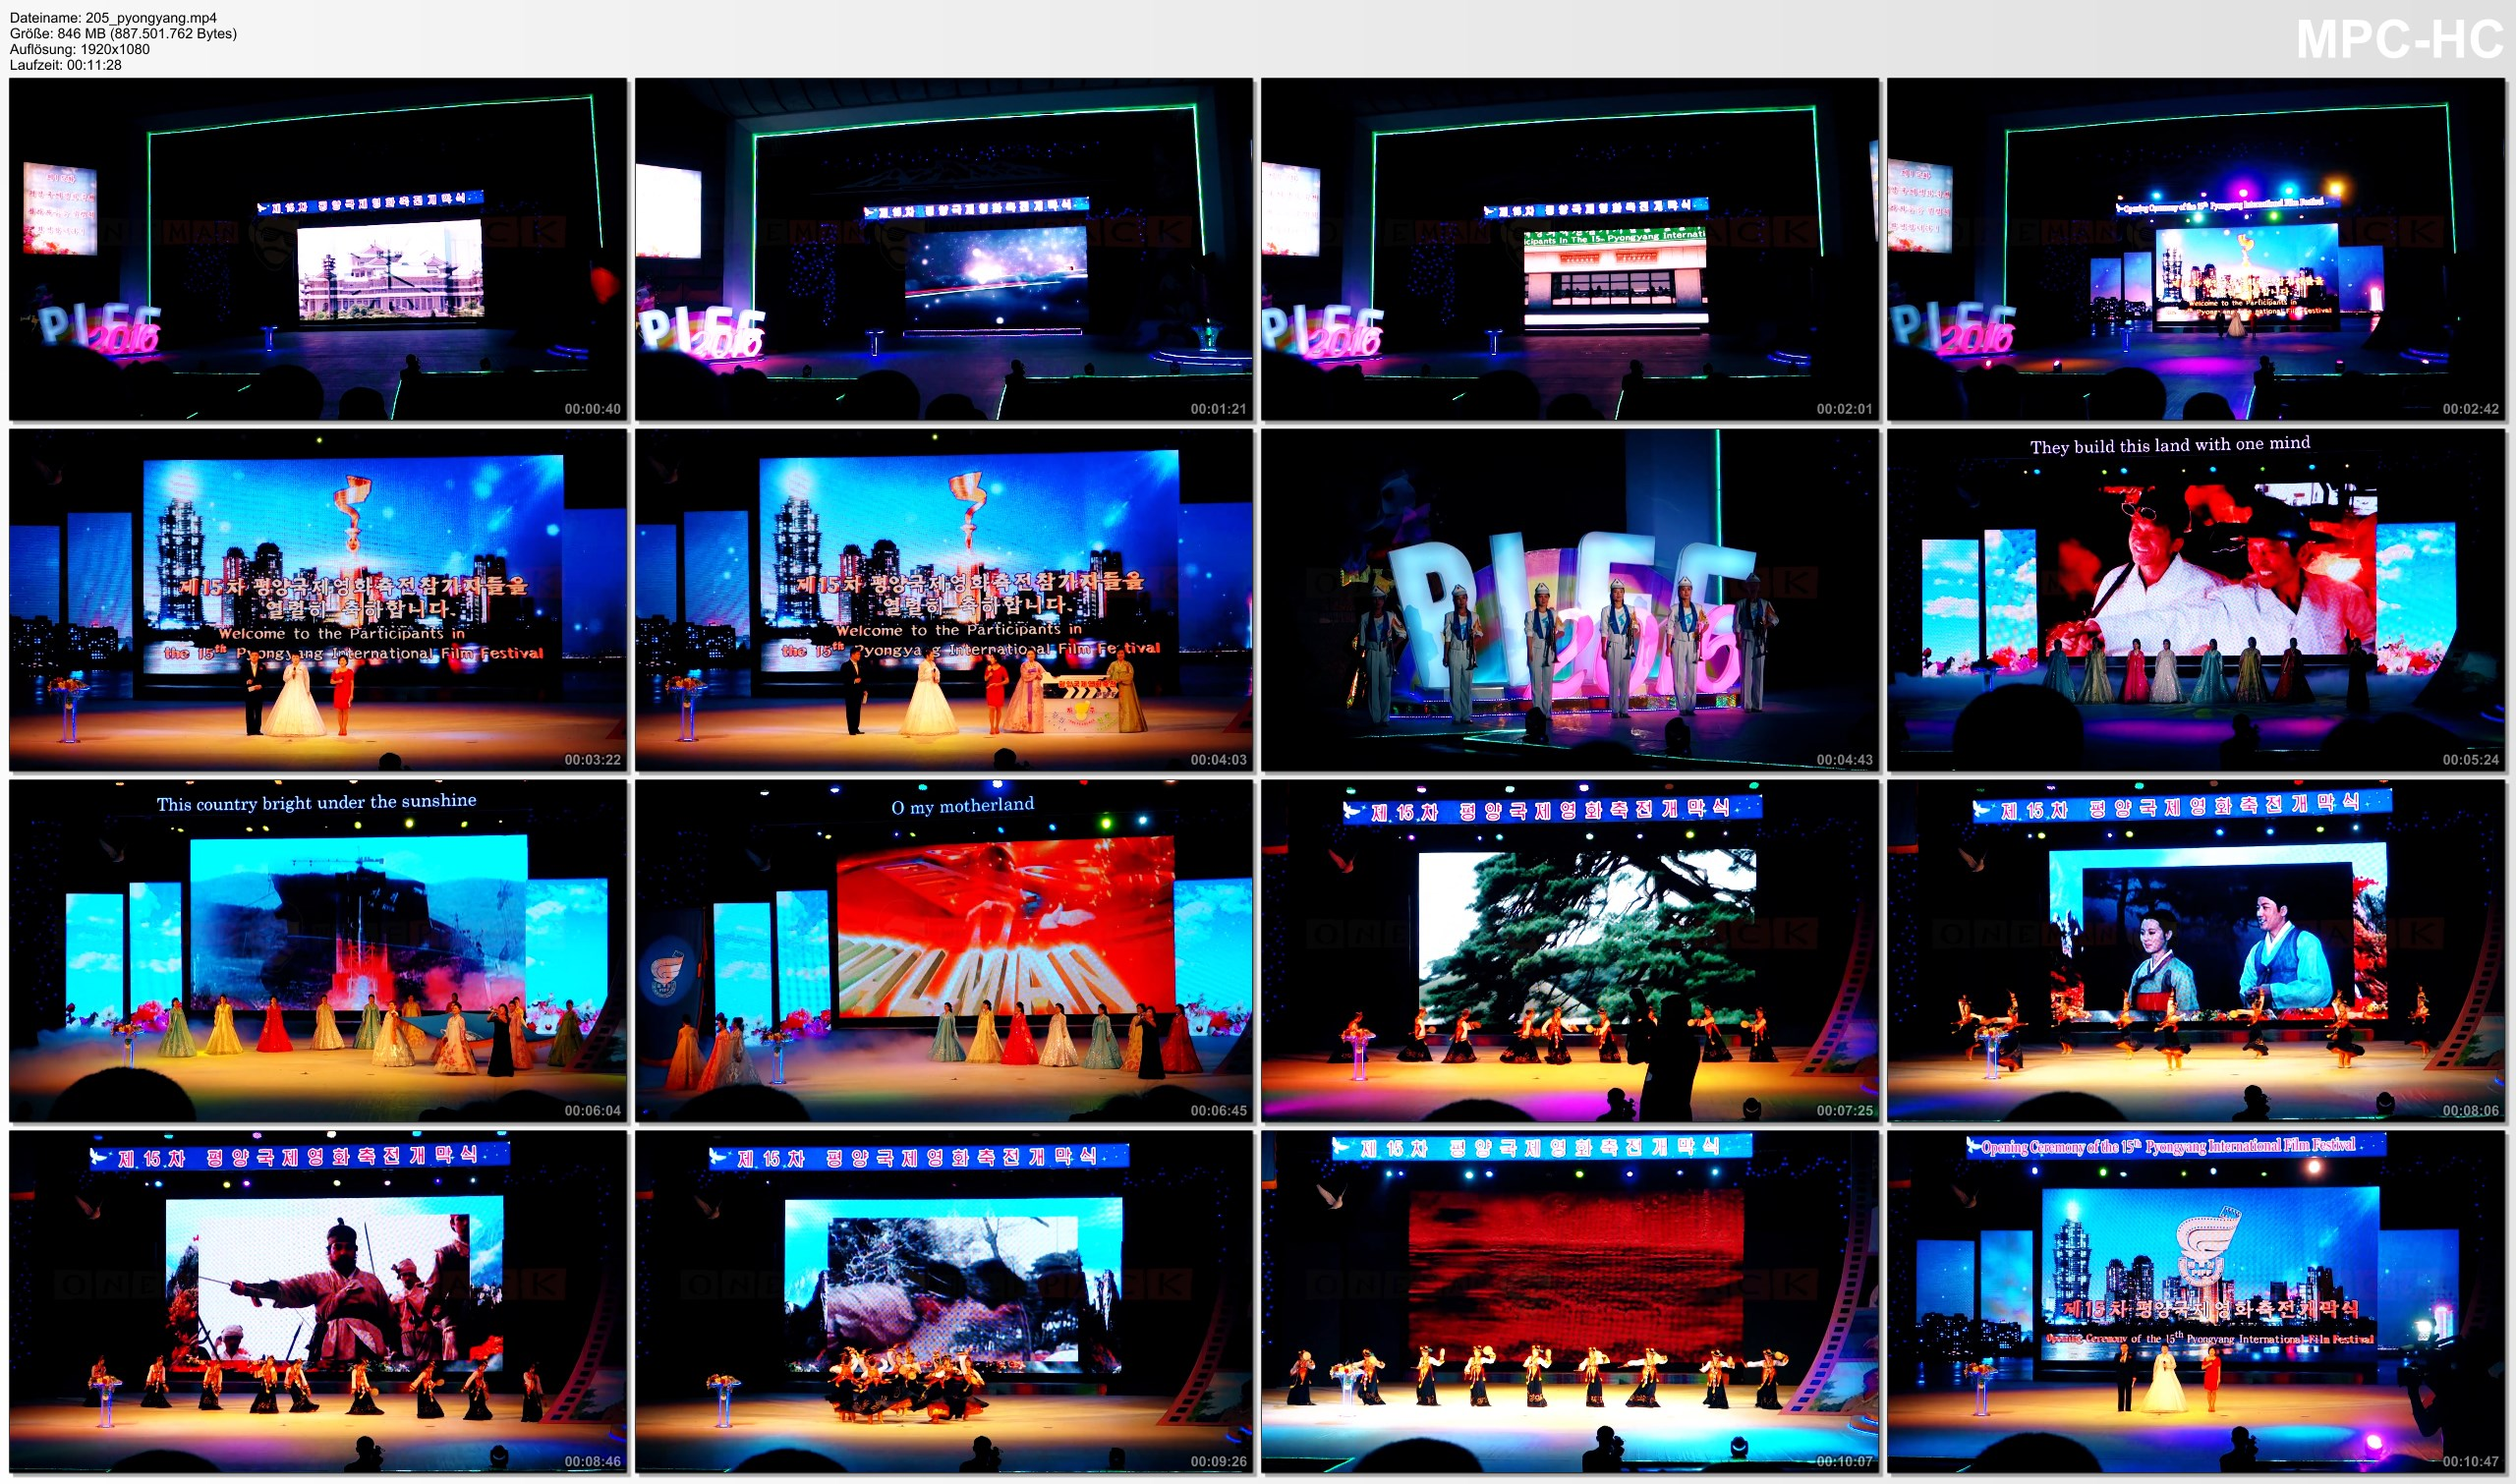 Pictures from Video 【1080p】Footage | Pyongyang International Film Festival PIFF 2016 @NORTH KOREA .: DPRK *TRAVEL VIDEO*